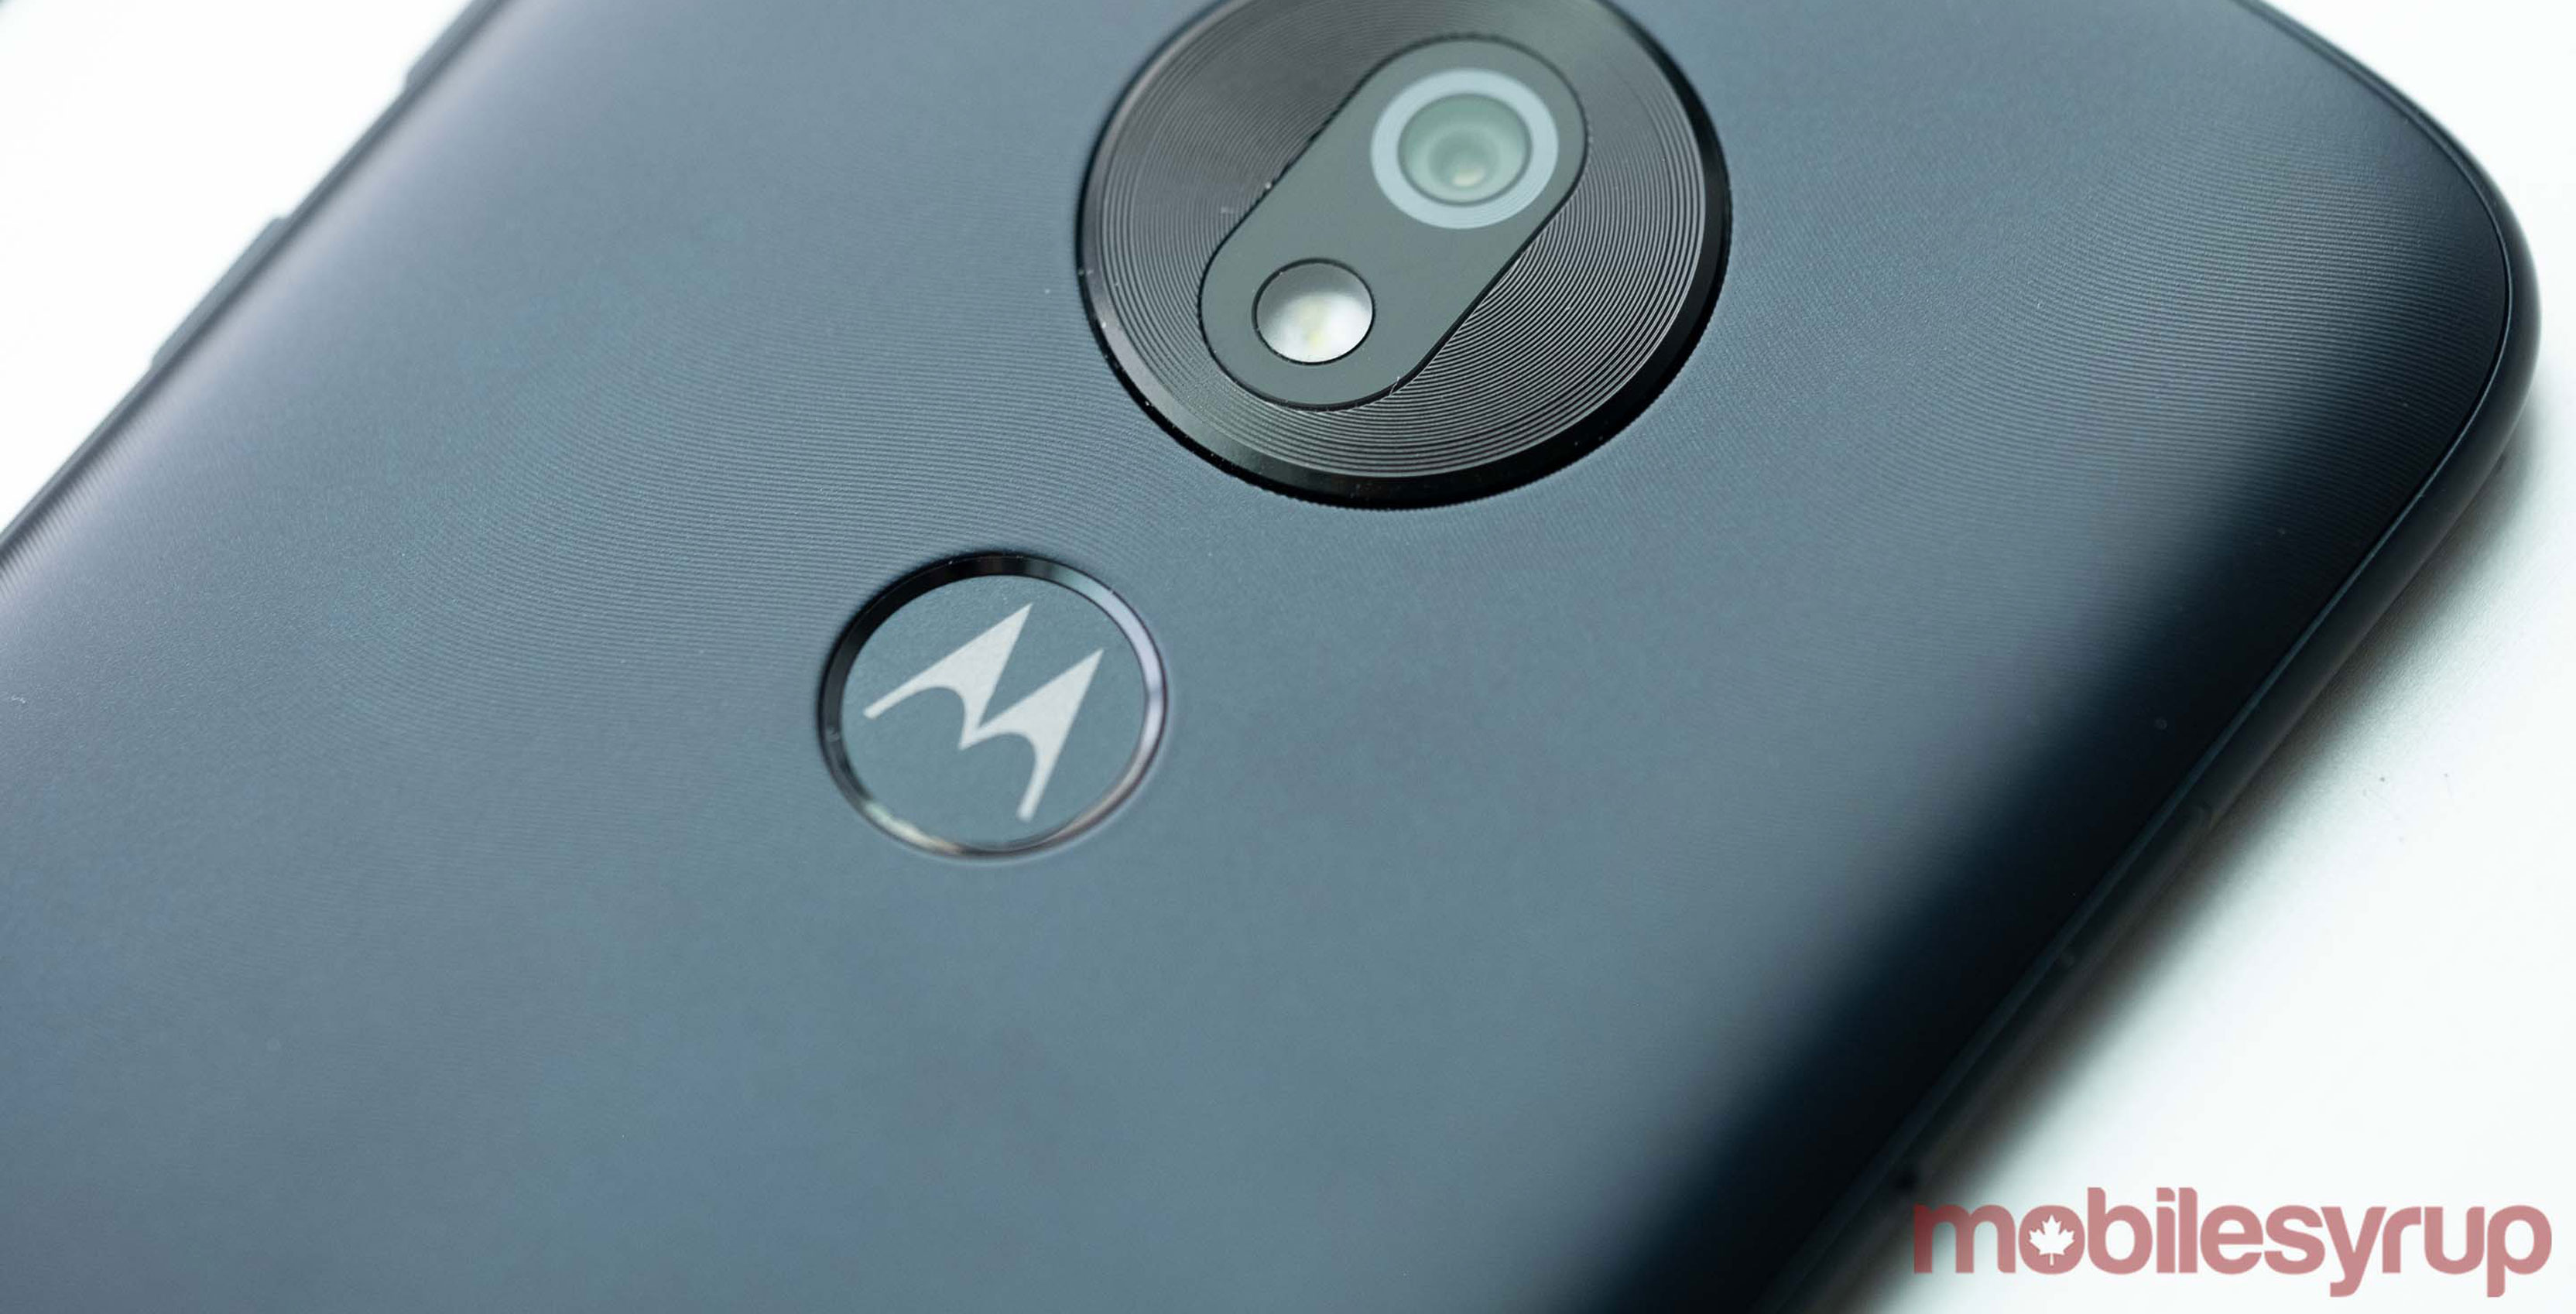 Leaked photo suggests Motorola may be developing a phone with a stylus